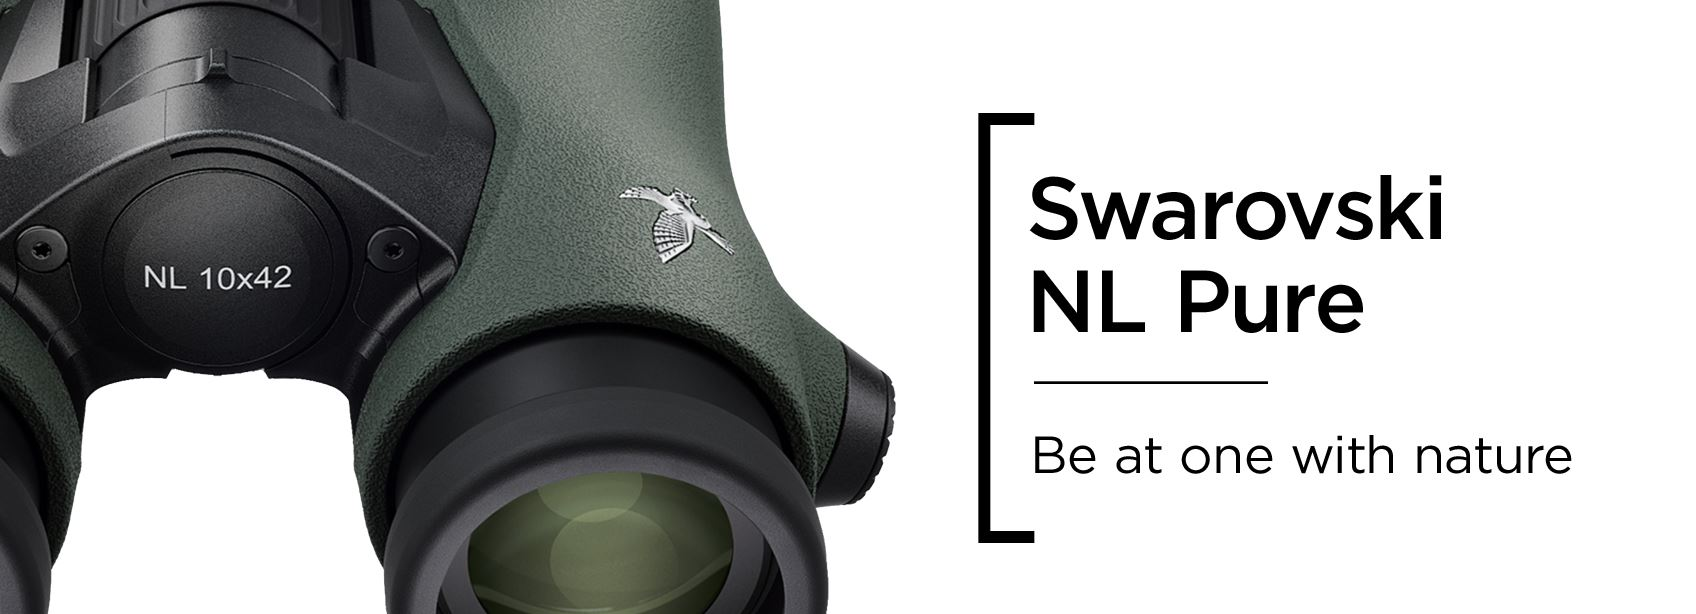 Class leading Field of View, radical ergonomics | The new Swarovski NL Pure sets new standards